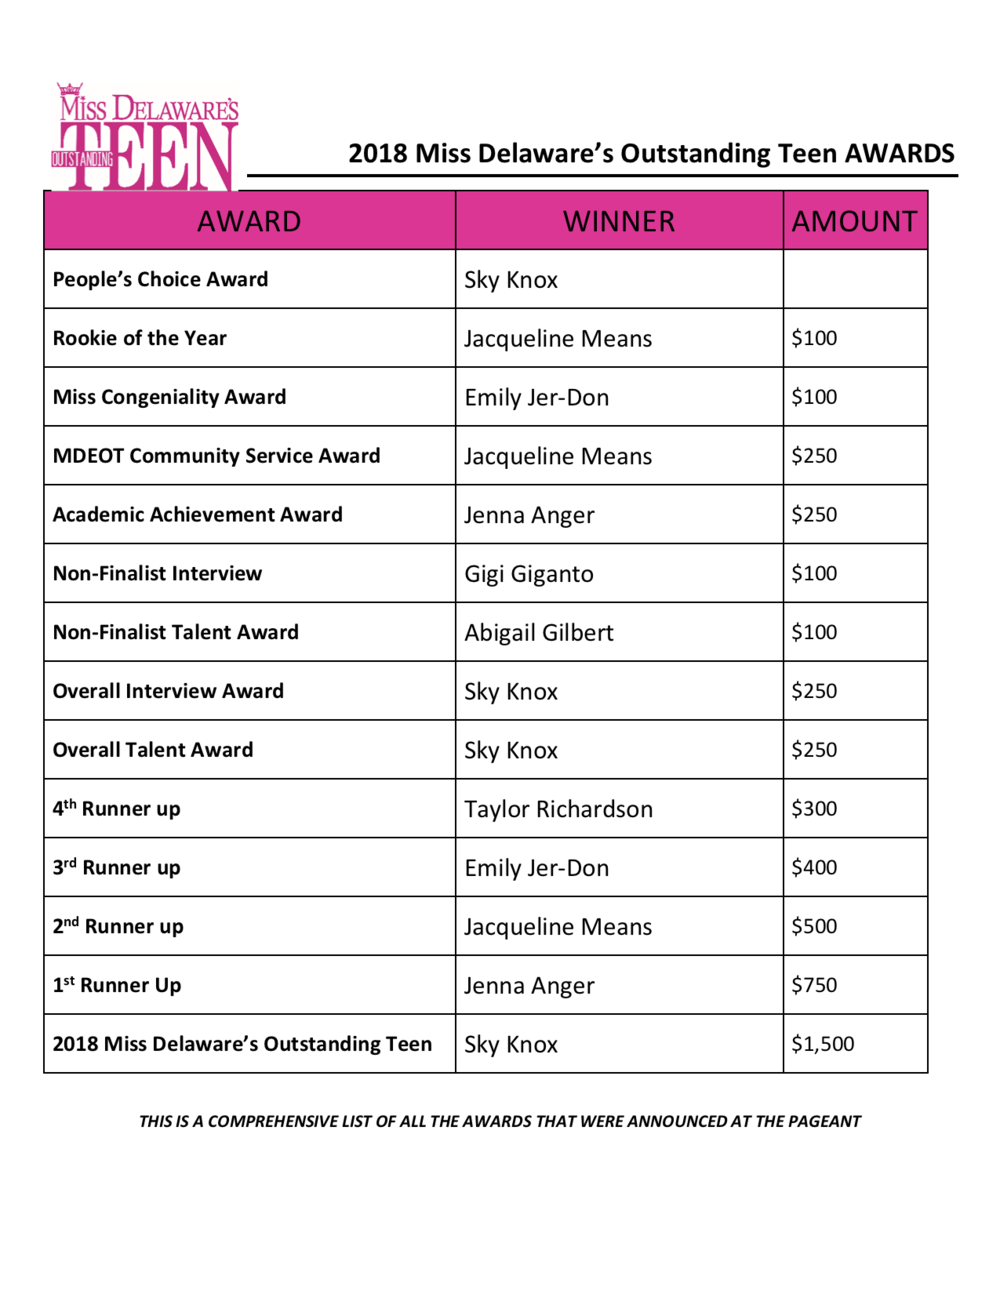 2018 Awards list - TEEN.png